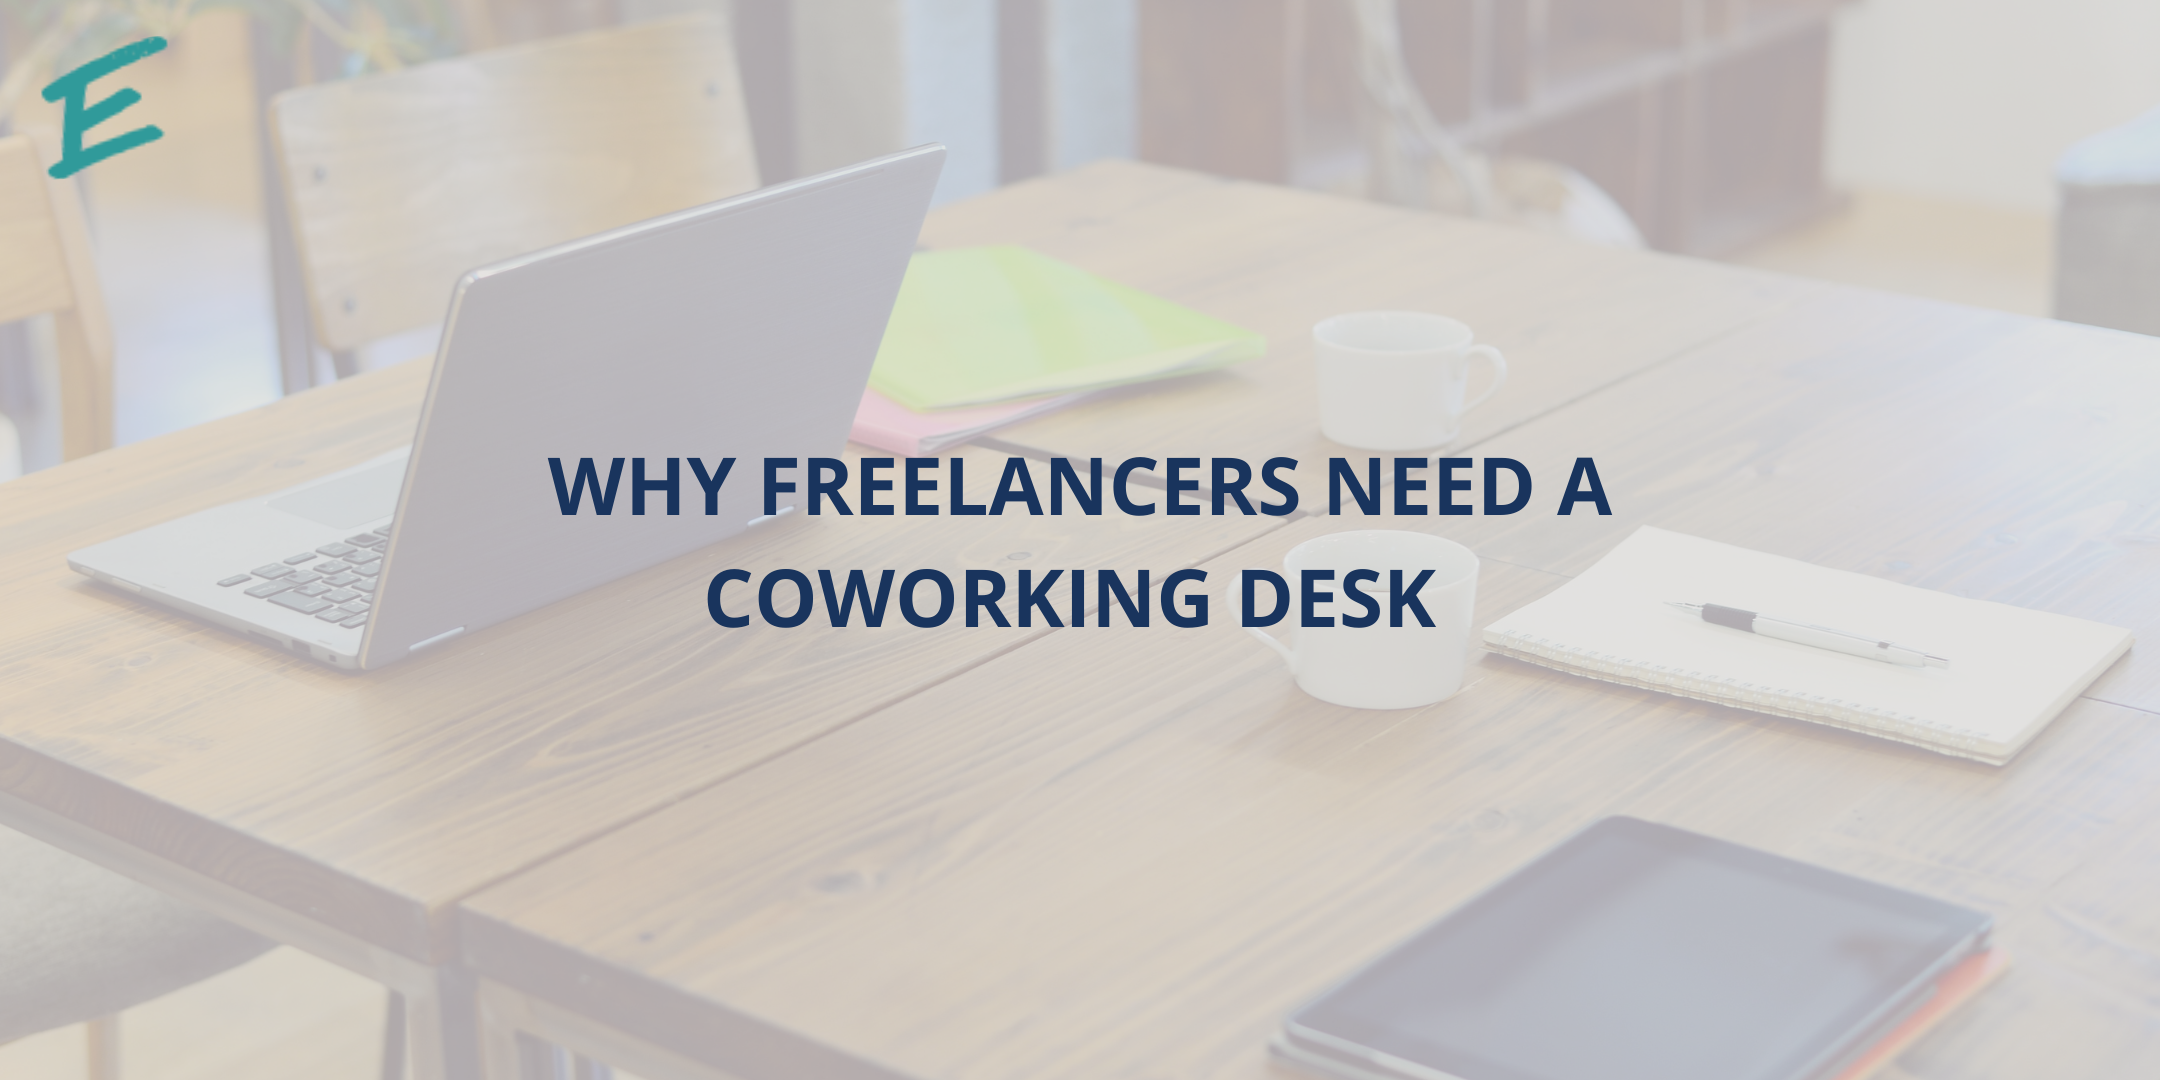 why-freelancers-need-a-coworking-desk